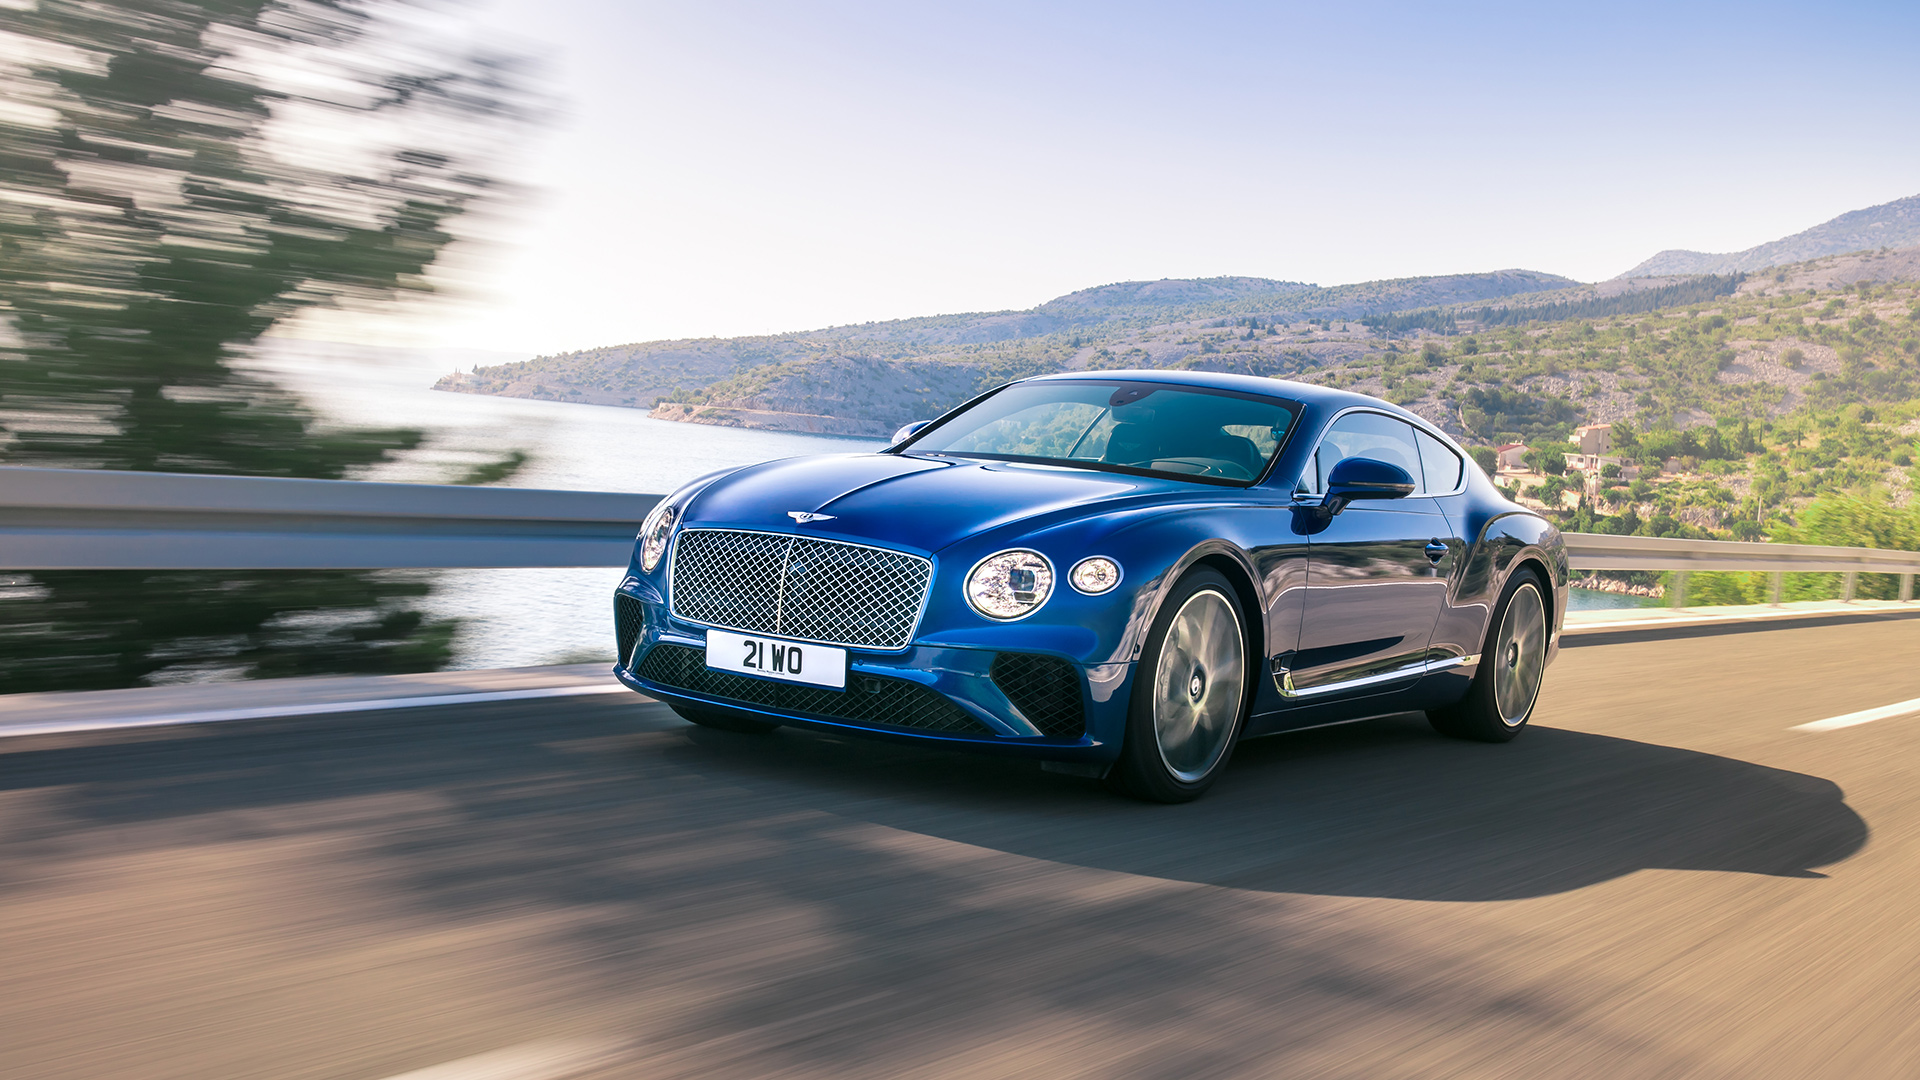 Bentley Used Cars For Sale On Auto Trader Uk